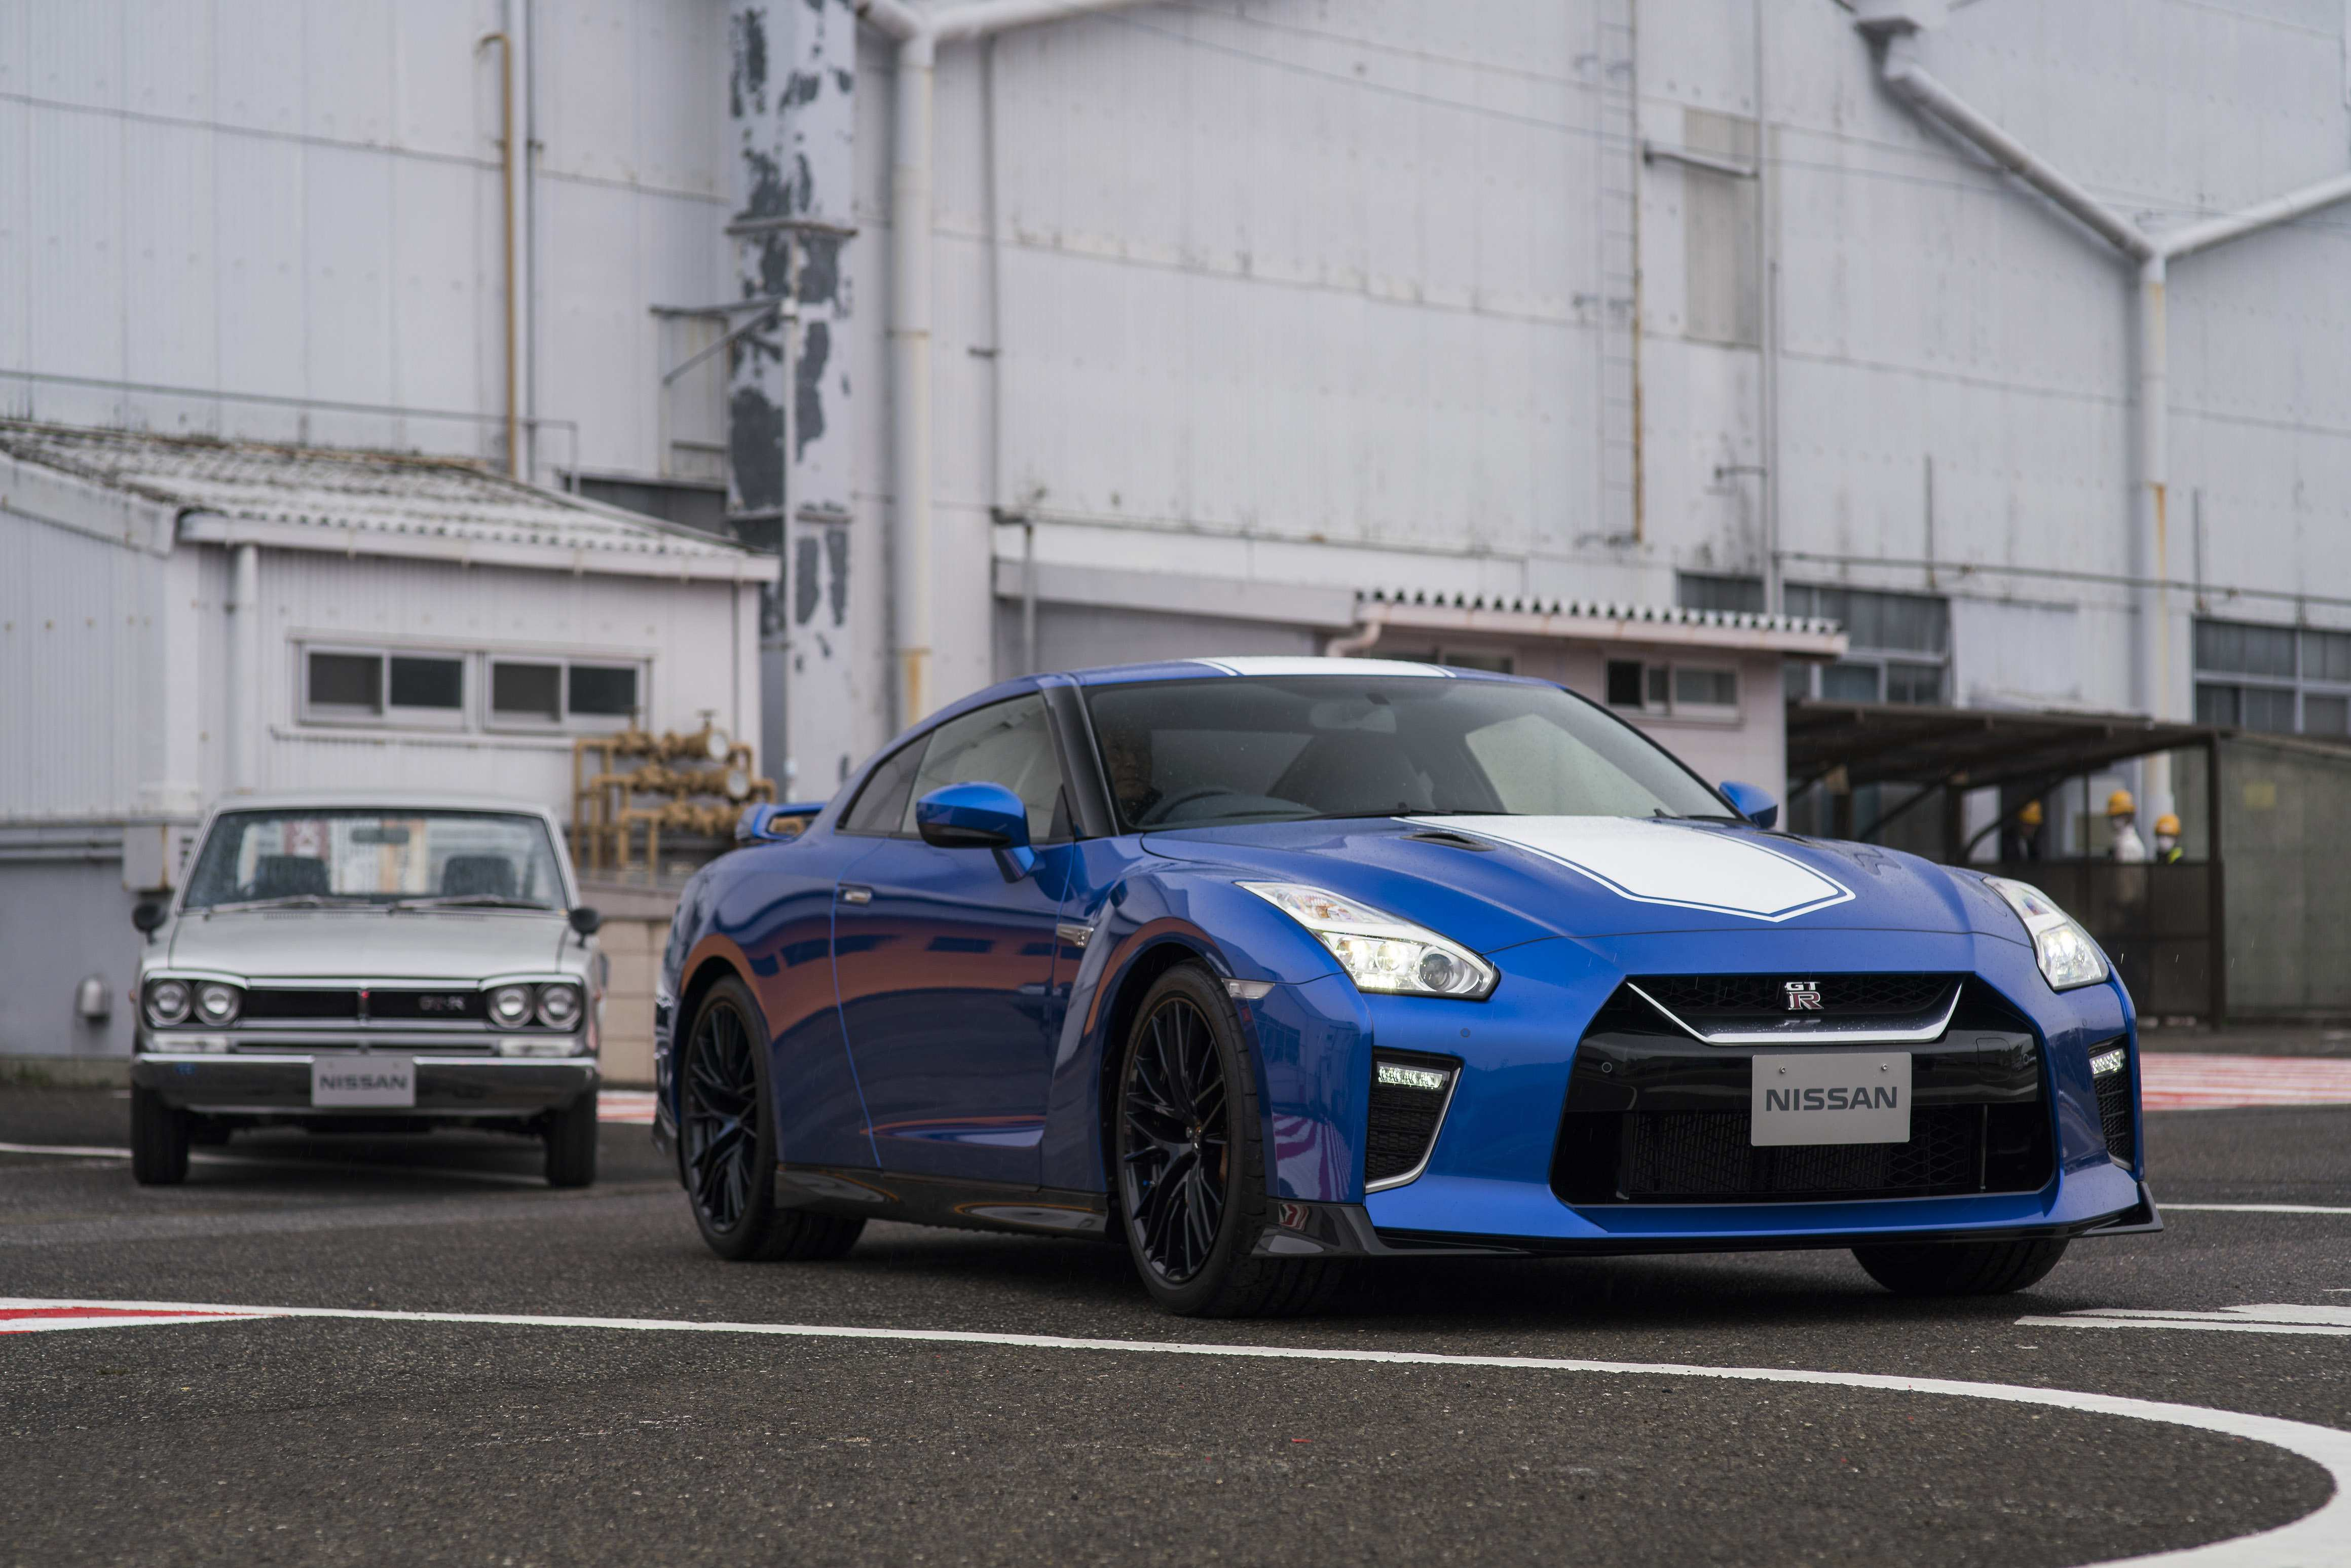 71 A Nissan Gtr 2020 Top Speed New Concept